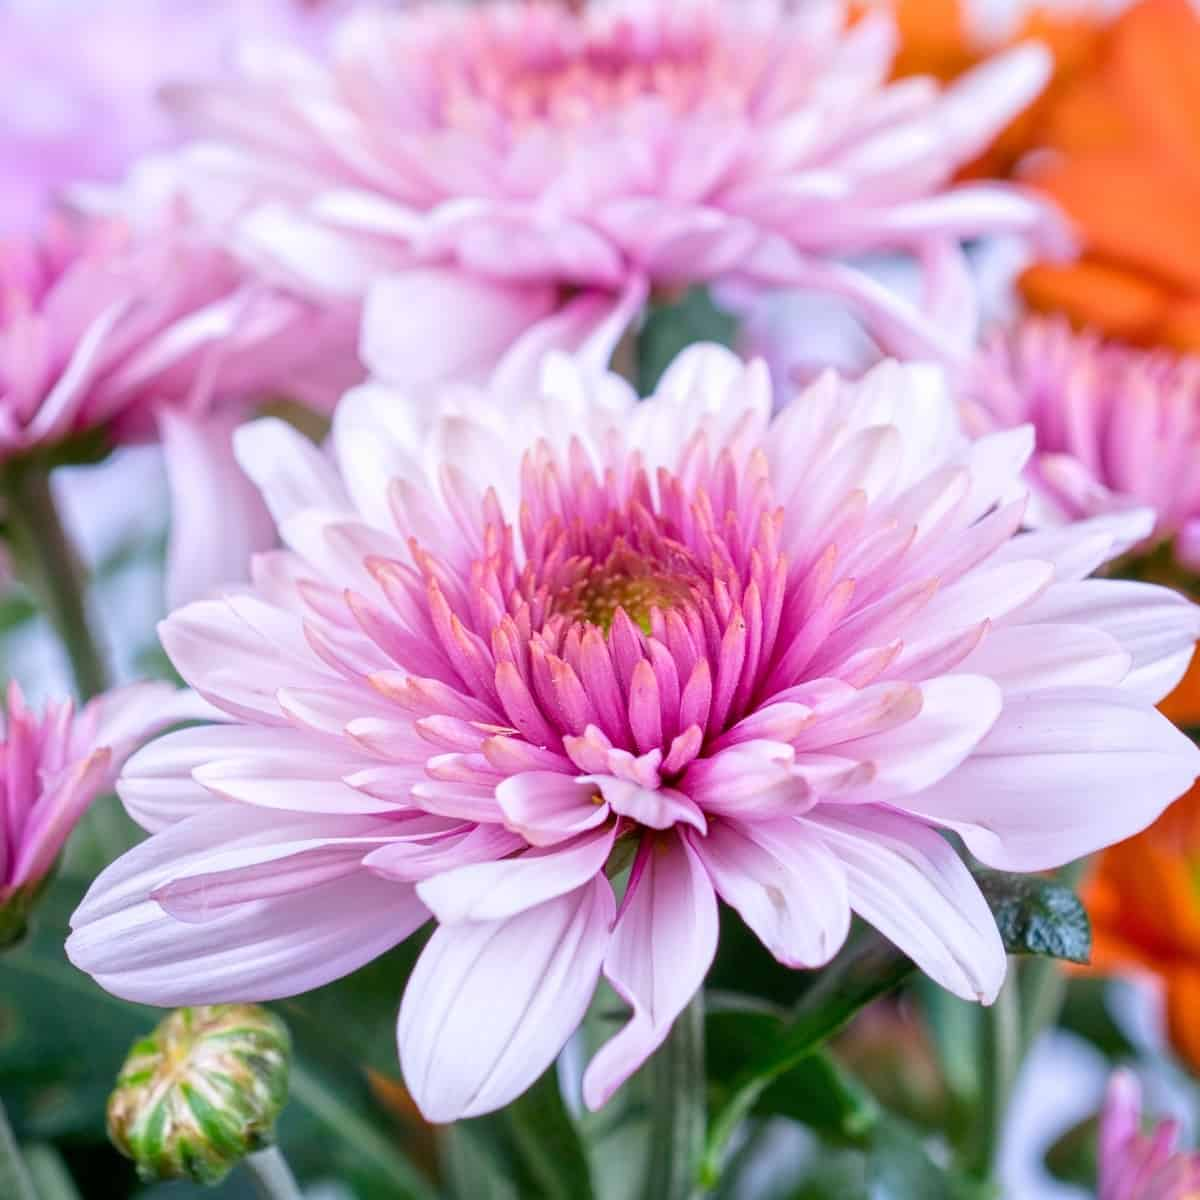 chrysanthemums come in a variety of beautiful colors